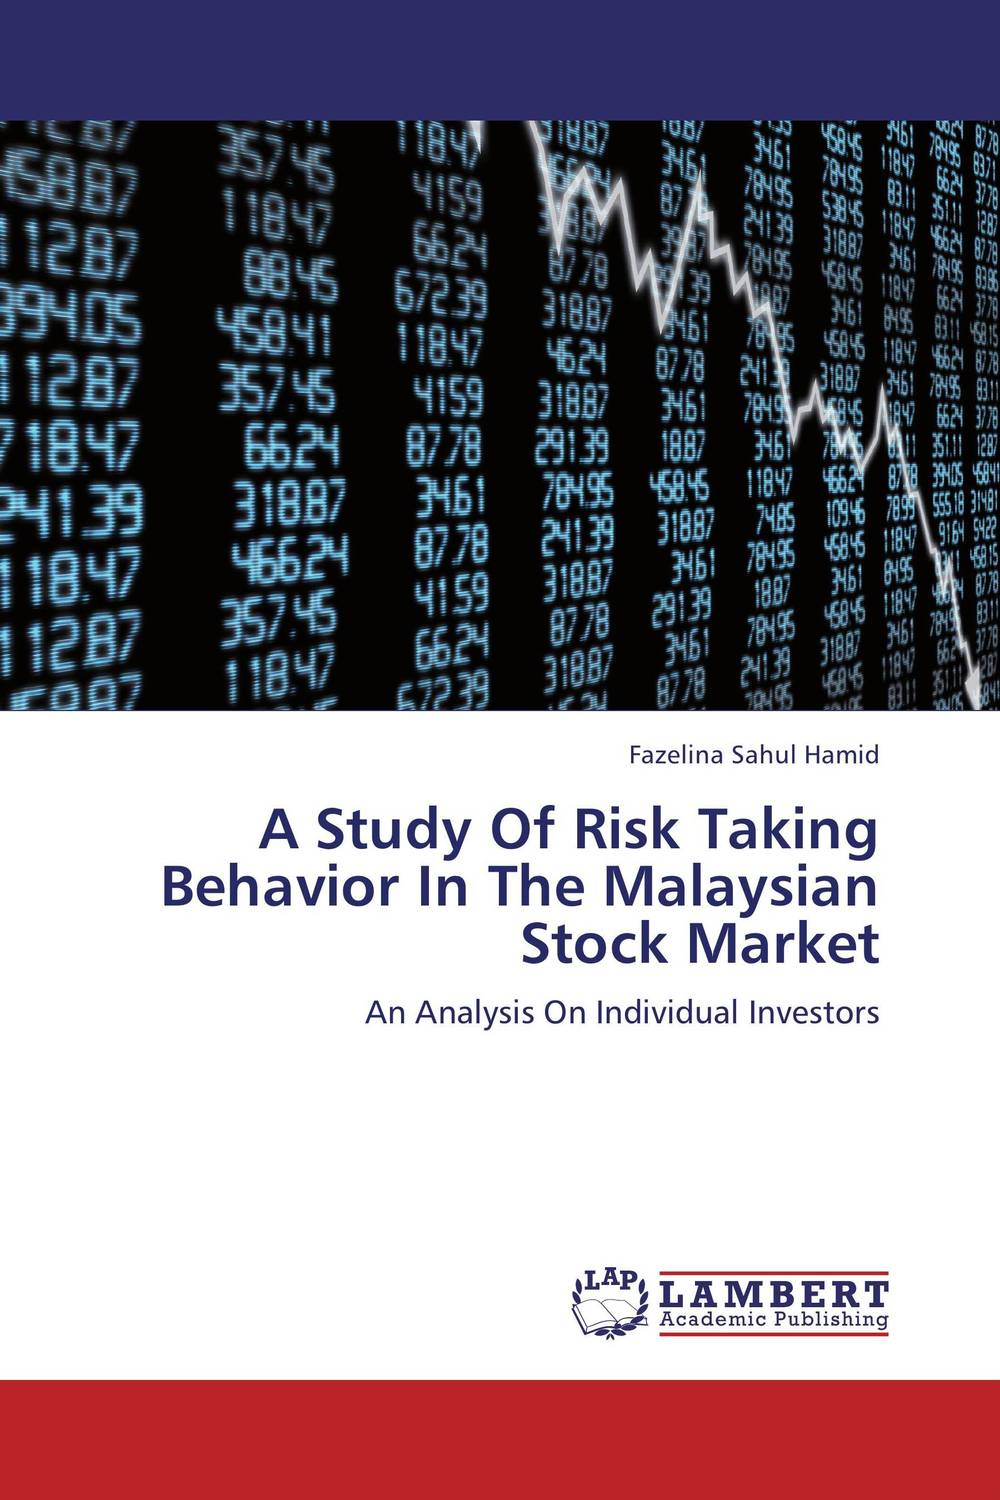 A Study Of Risk Taking Behavior In The Malaysian Stock Market christian szylar handbook of market risk